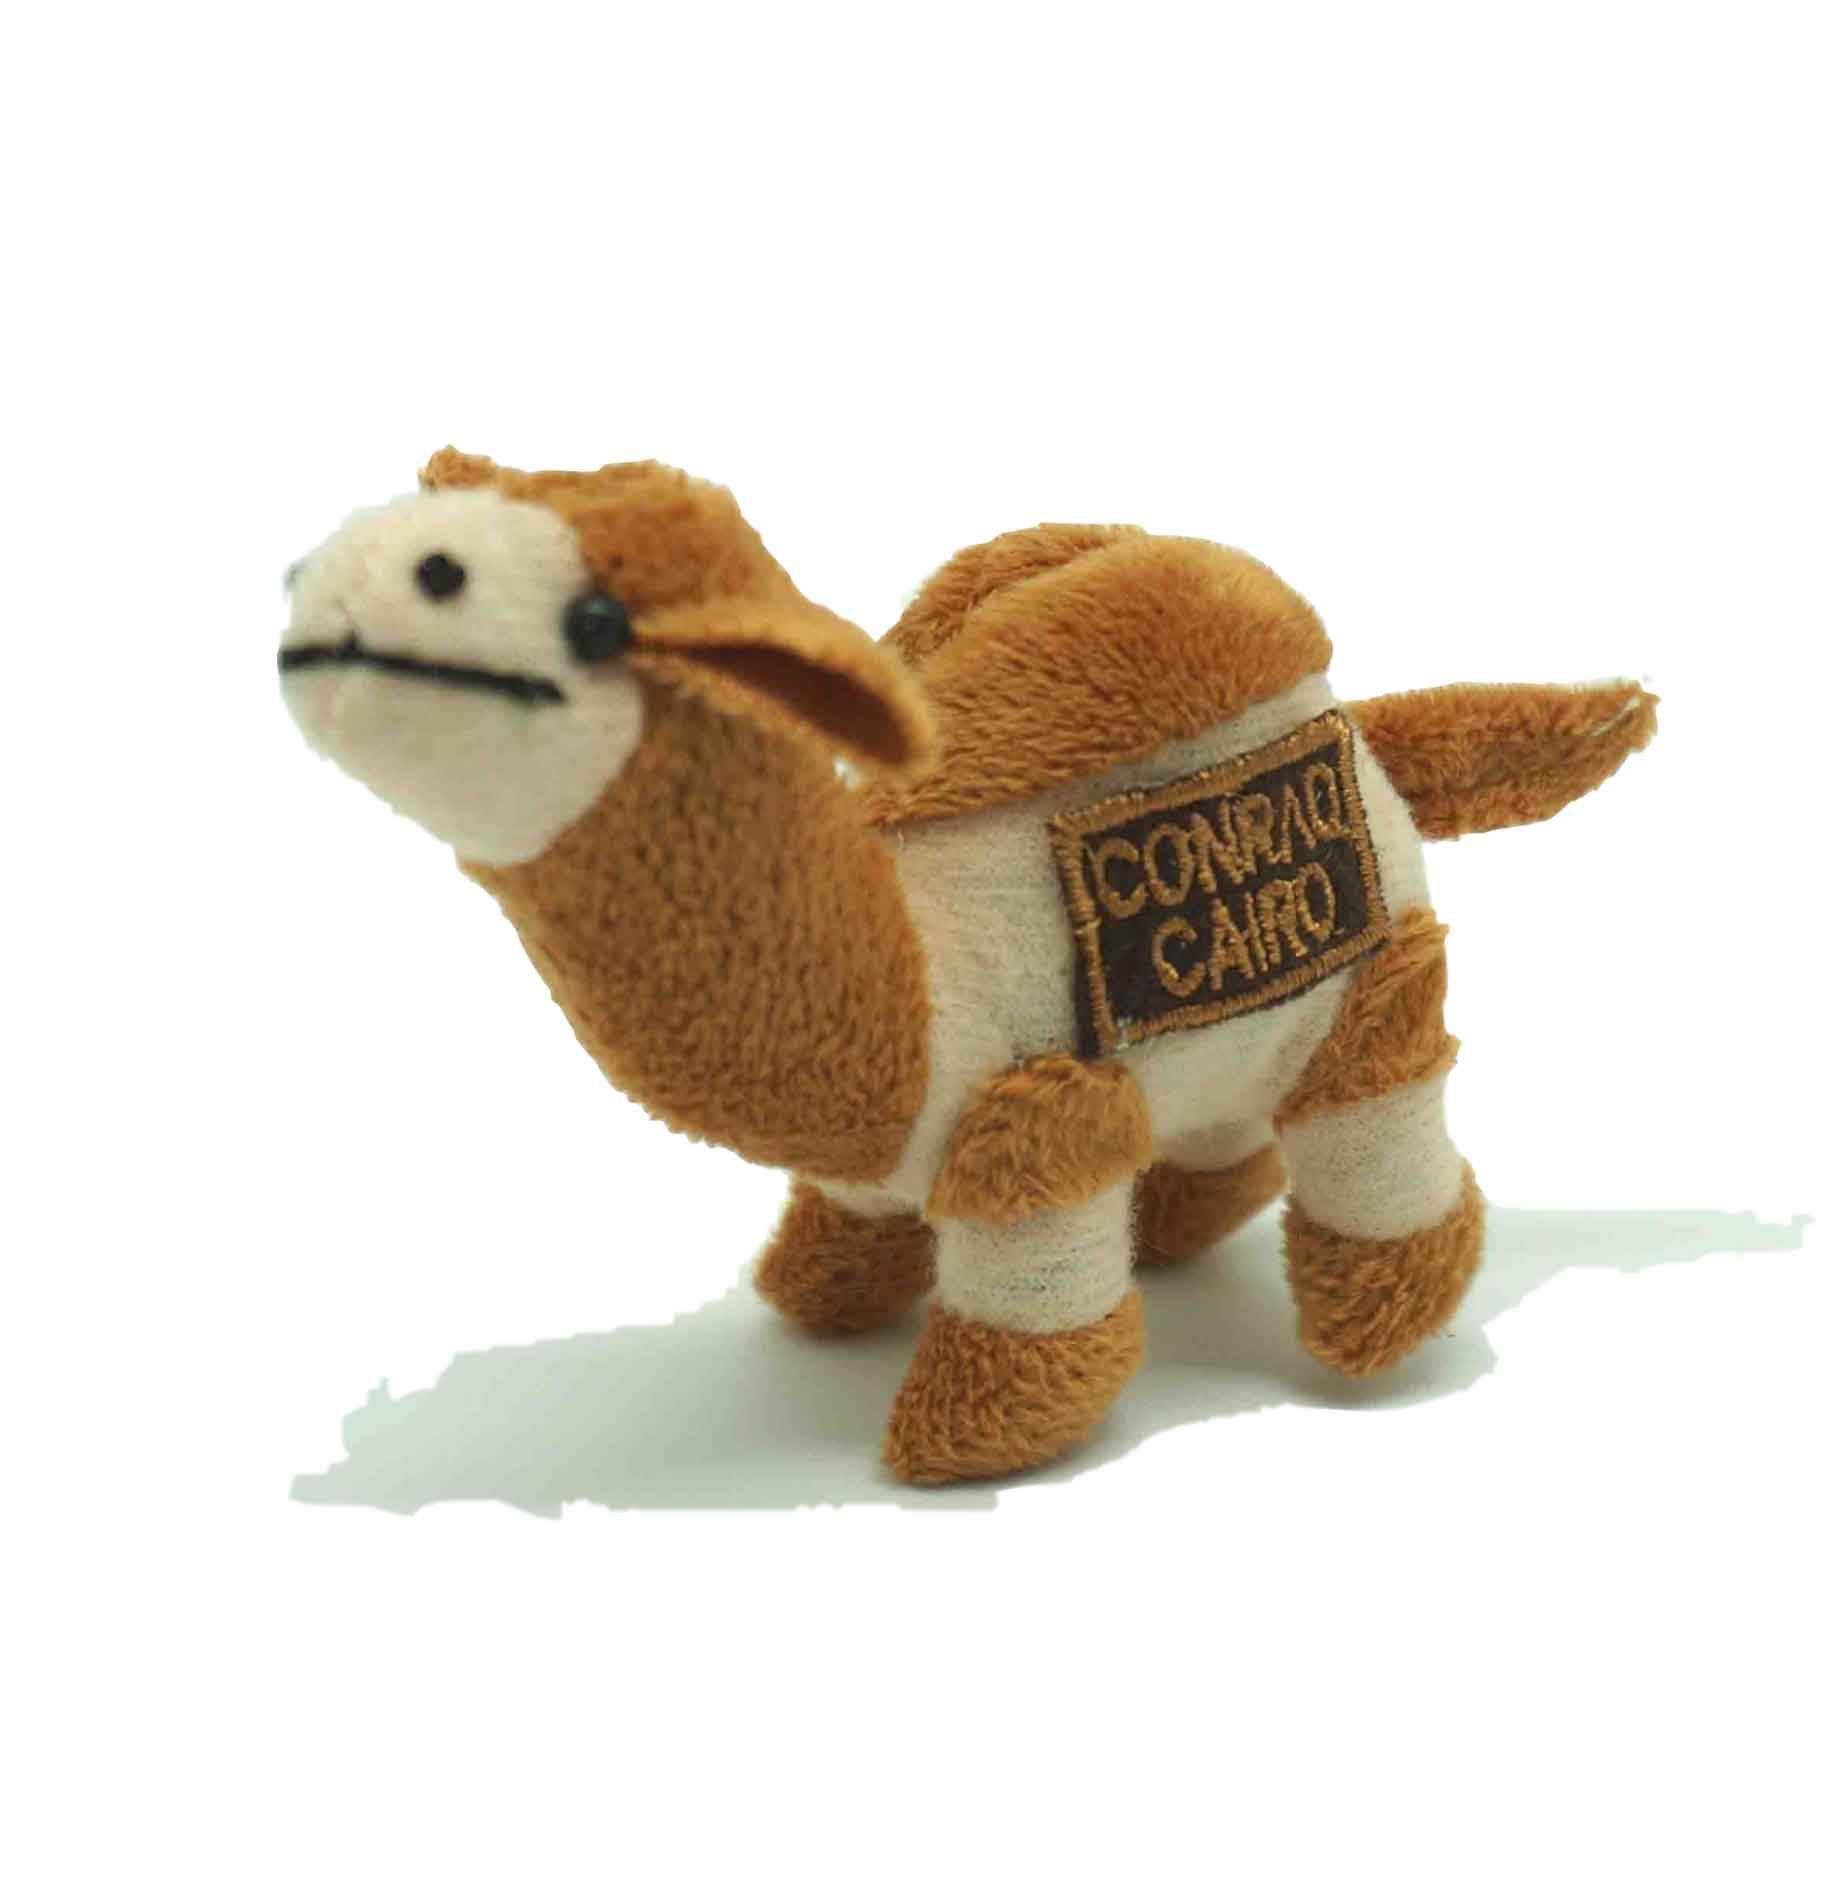 Camel cub plush toy